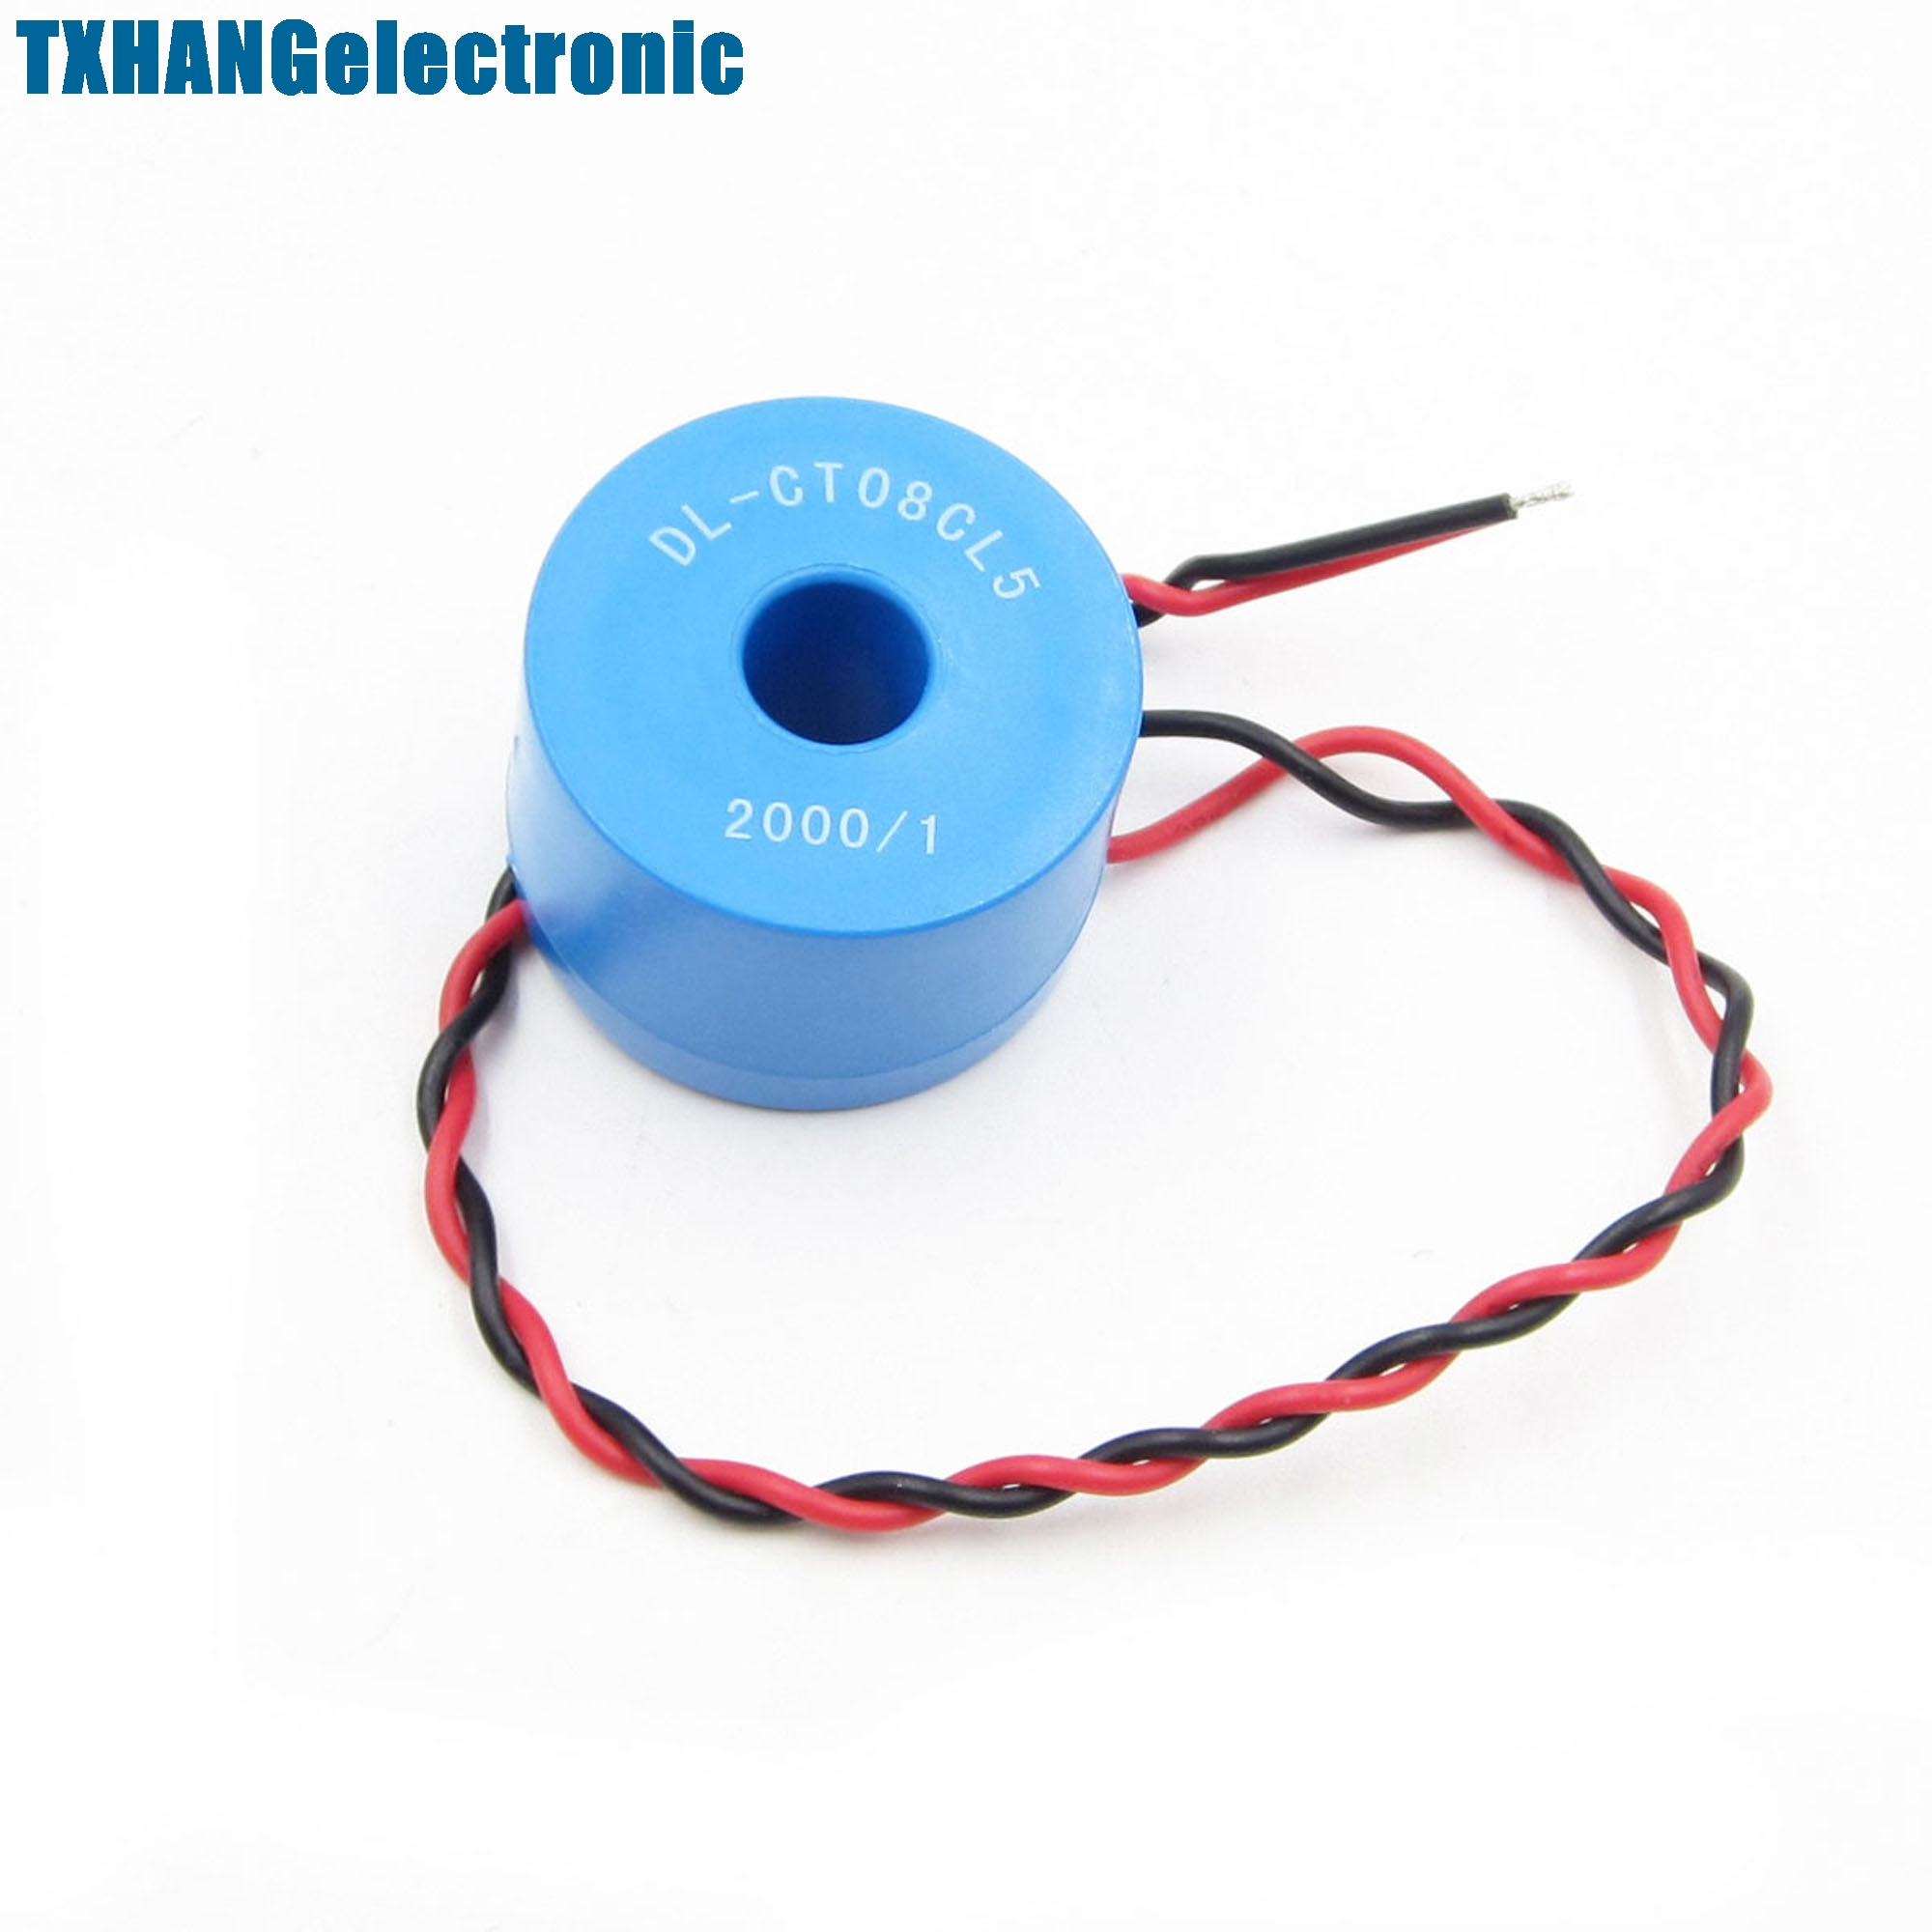 DL CT08CL5 20A 10mA 2000 1 0 120A Micro Current Transformer